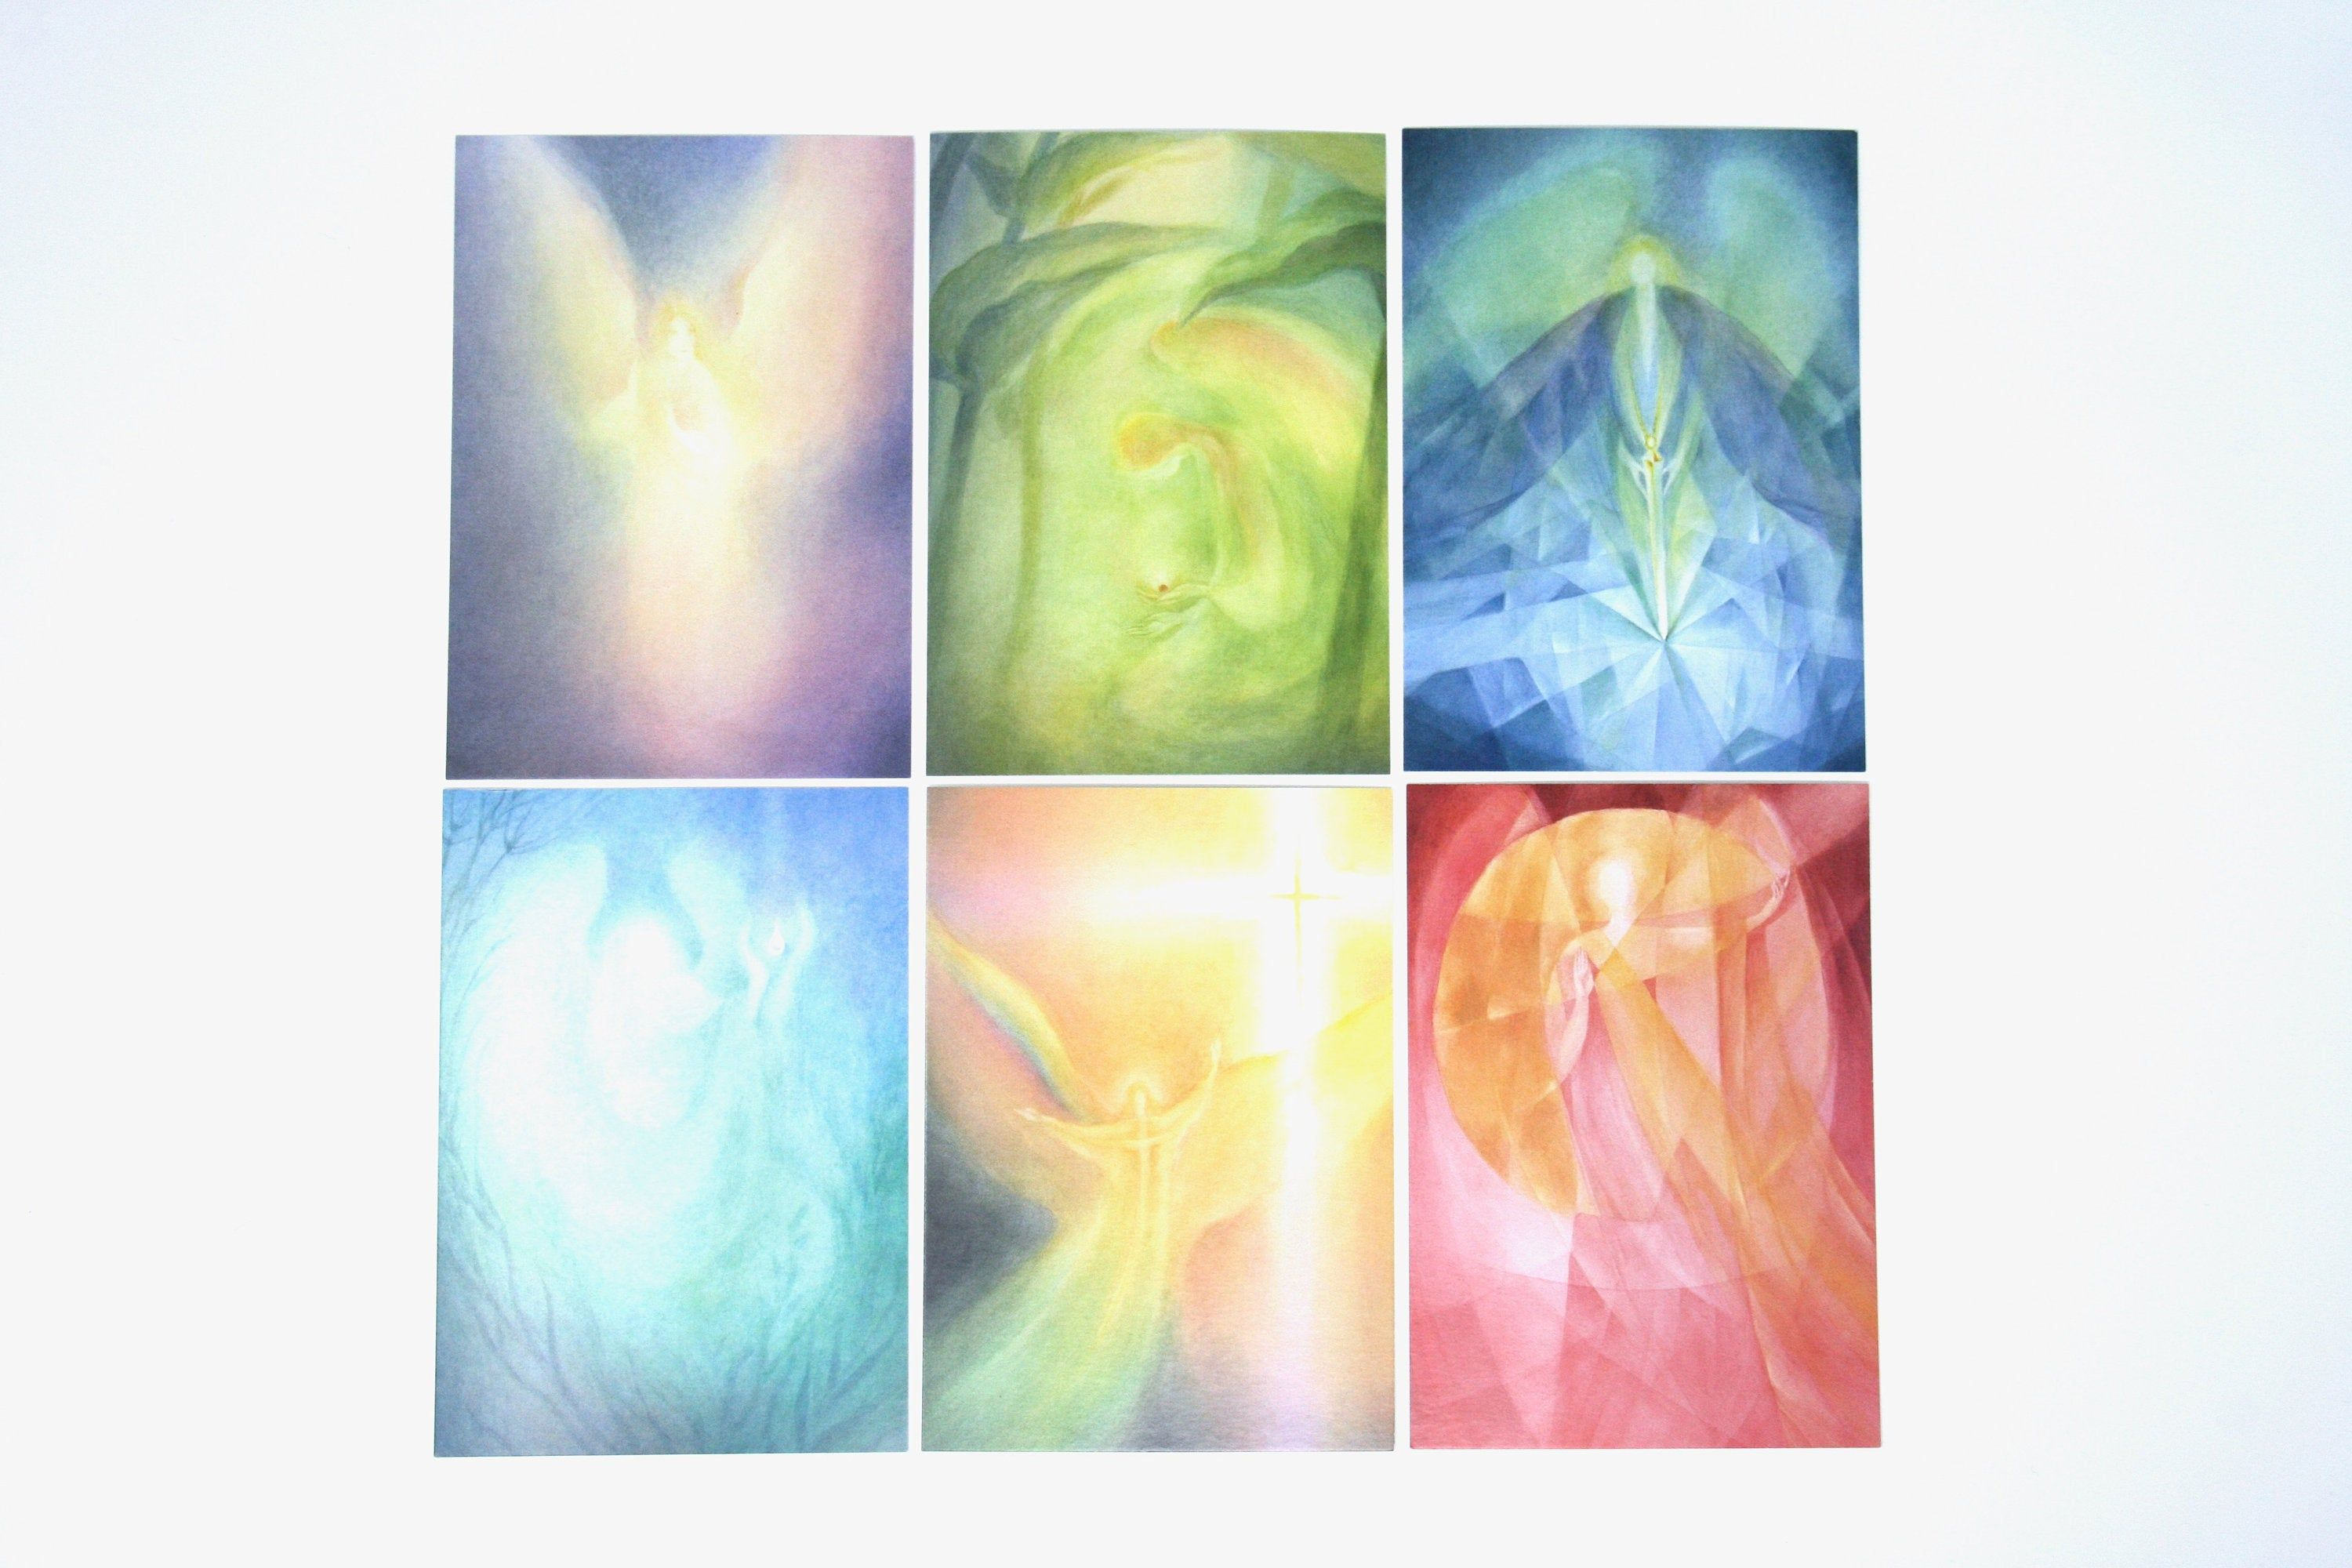 Angel / Guardian angel Postcard set by Brigitte Junghans 6 postcards with beautiful Angel pictures the angels are: Light Life Love Clarity Gem Dignity 15 x 11cm groß